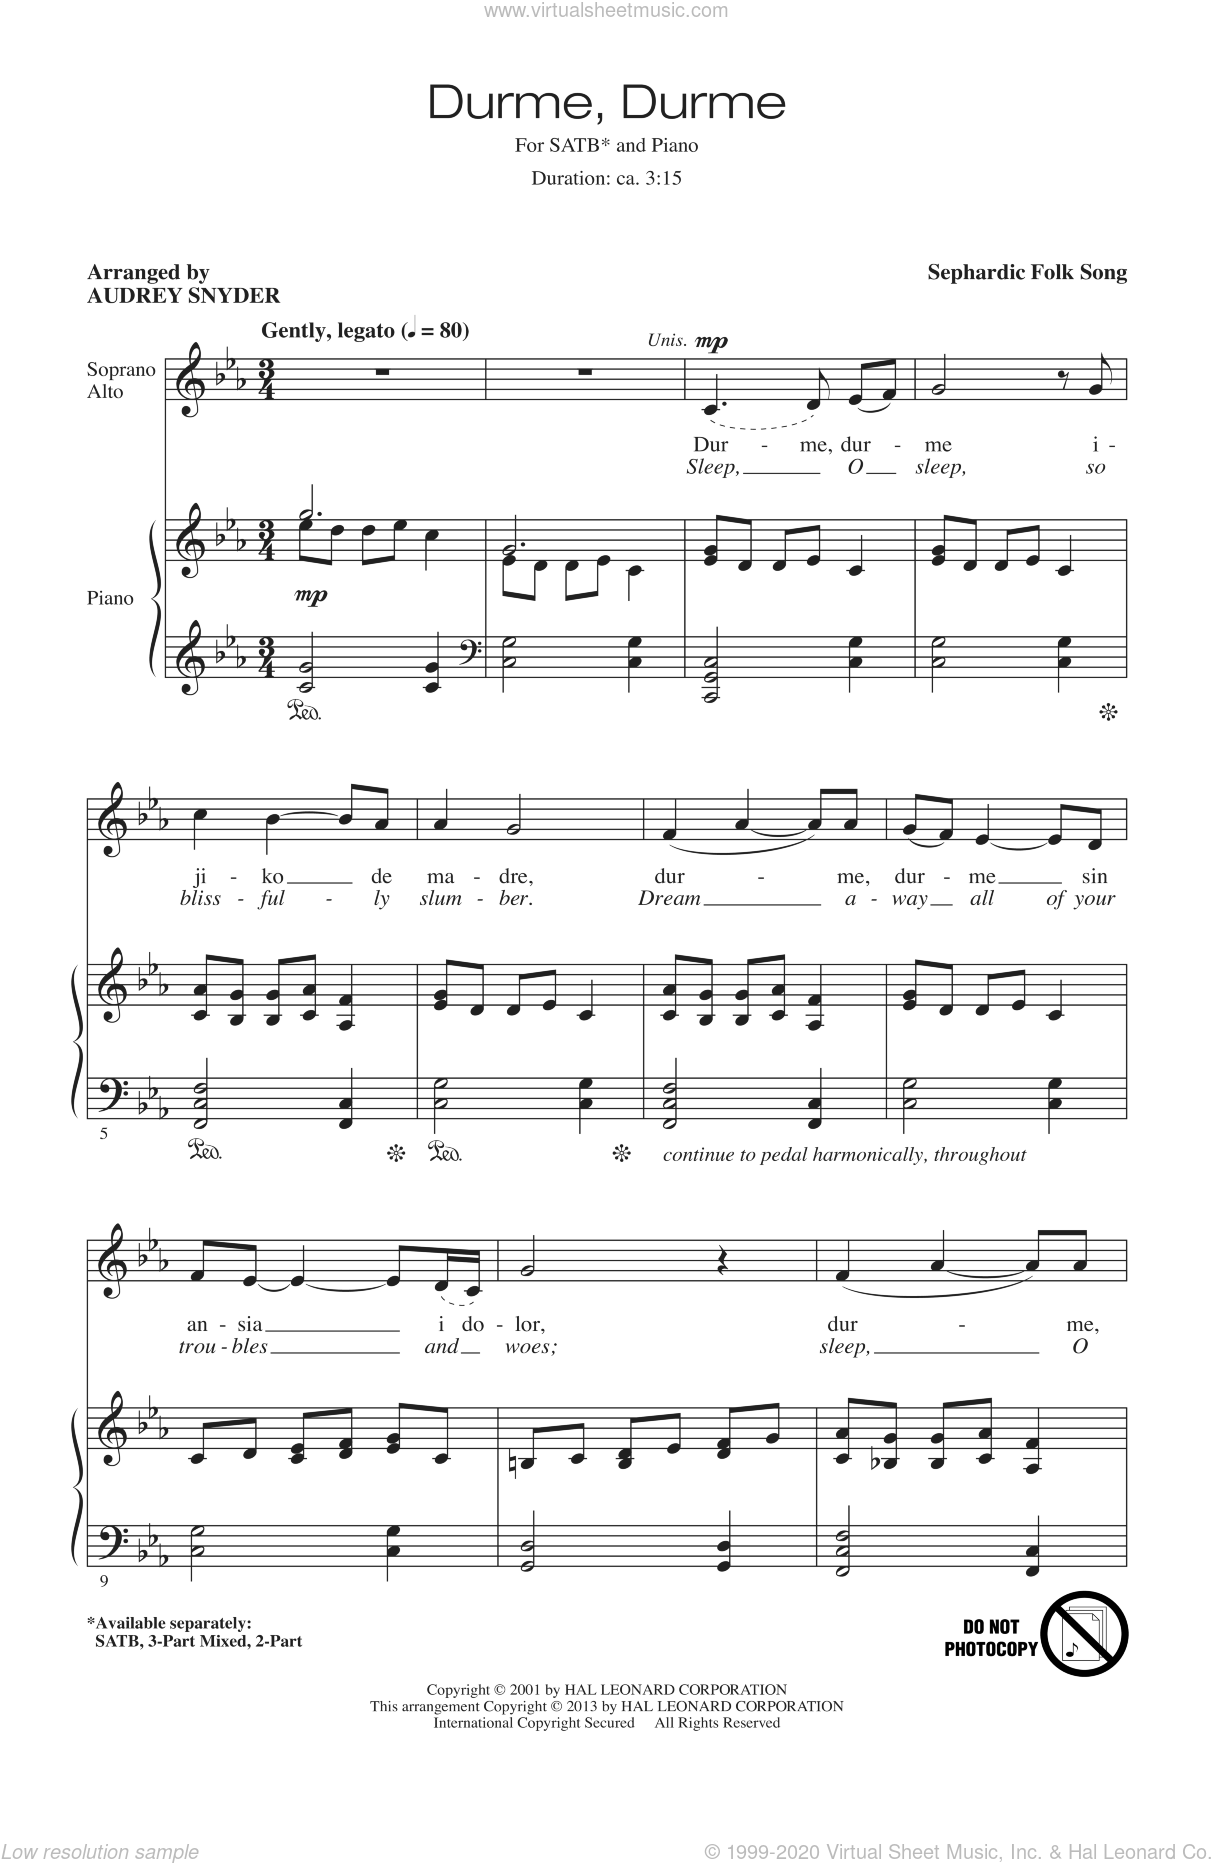 Durme, Durme sheet music for choir (SATB: soprano, alto, tenor, bass) by Audrey Snyder, intermediate